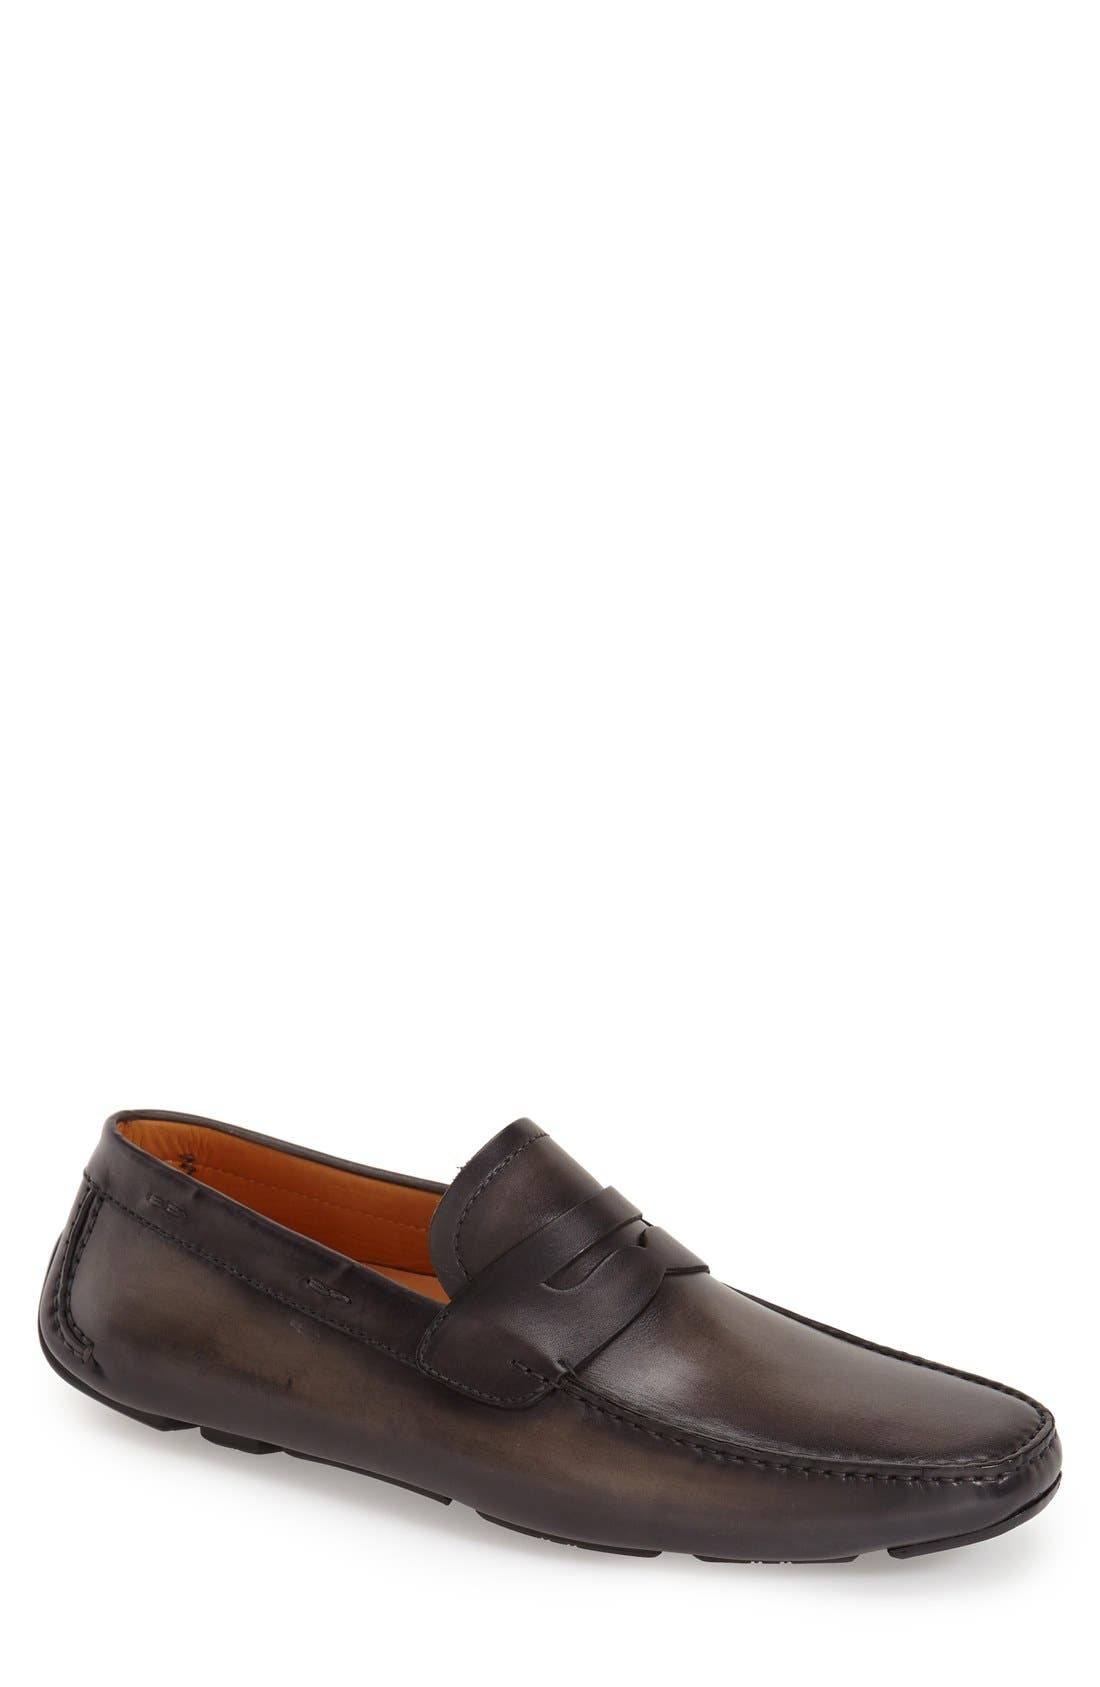 'Dylan' Leather Driving Shoe,                             Main thumbnail 3, color,